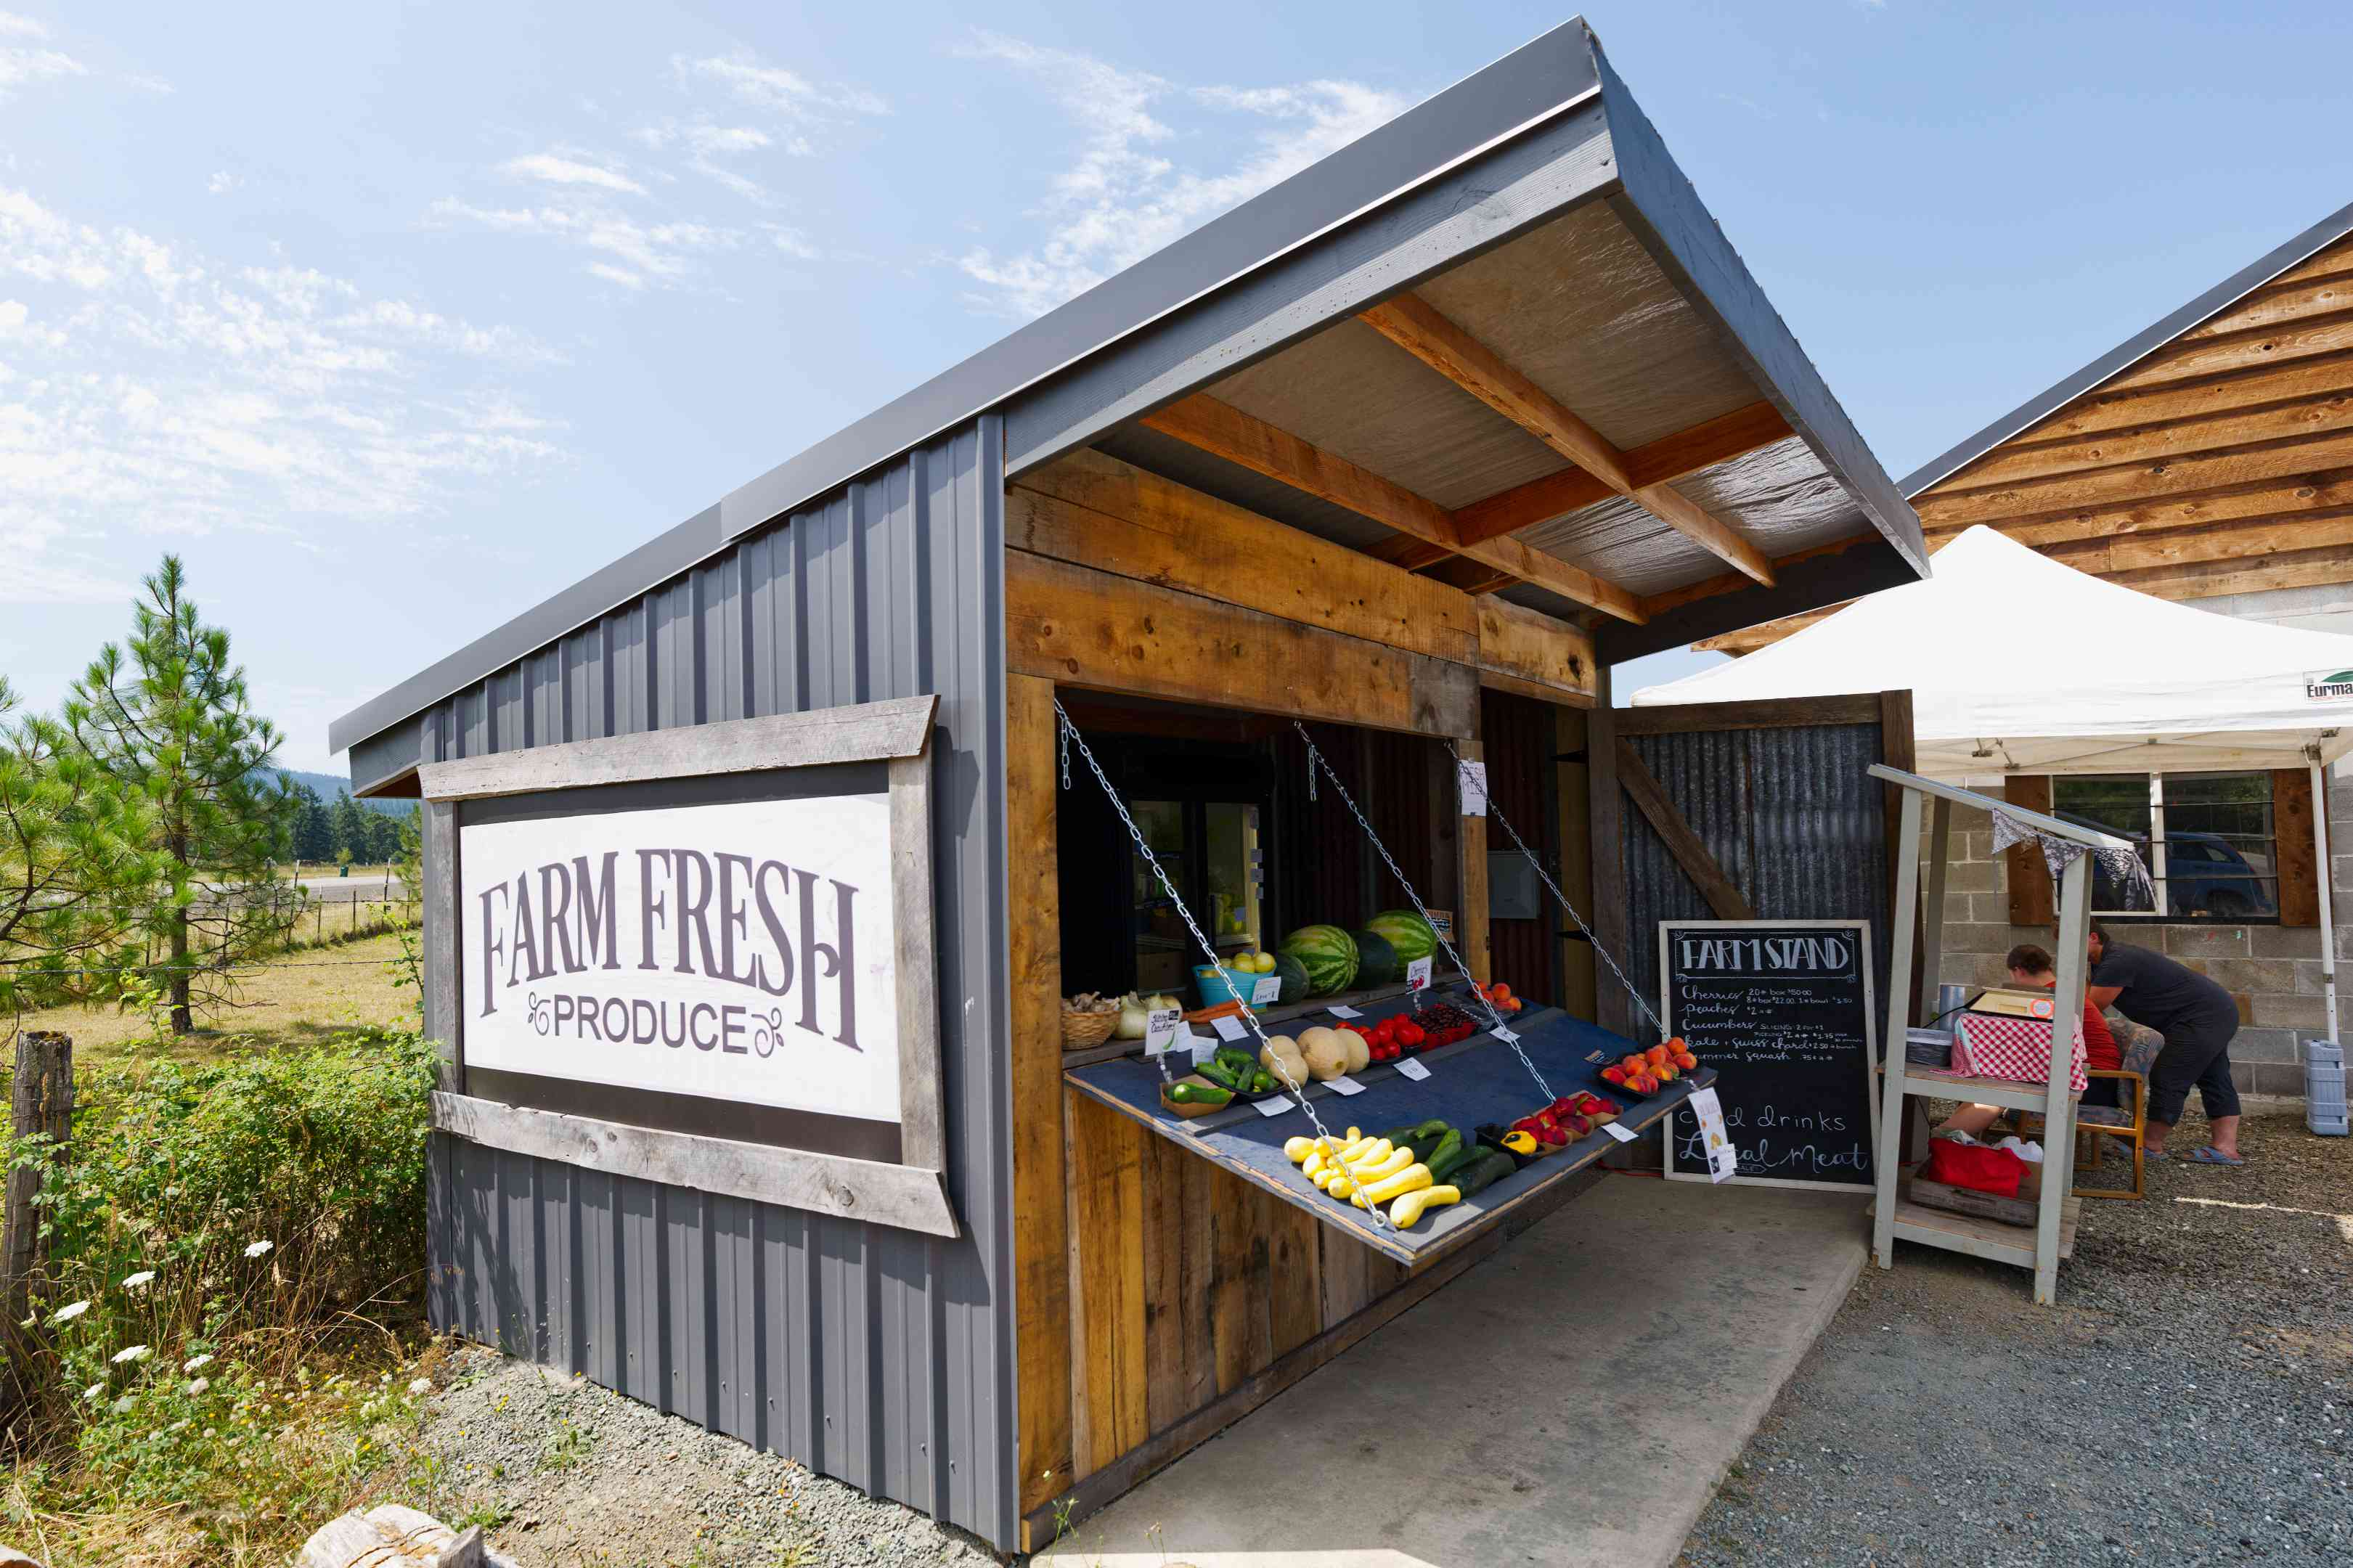 Small wooden store with large display of farm fresh produce